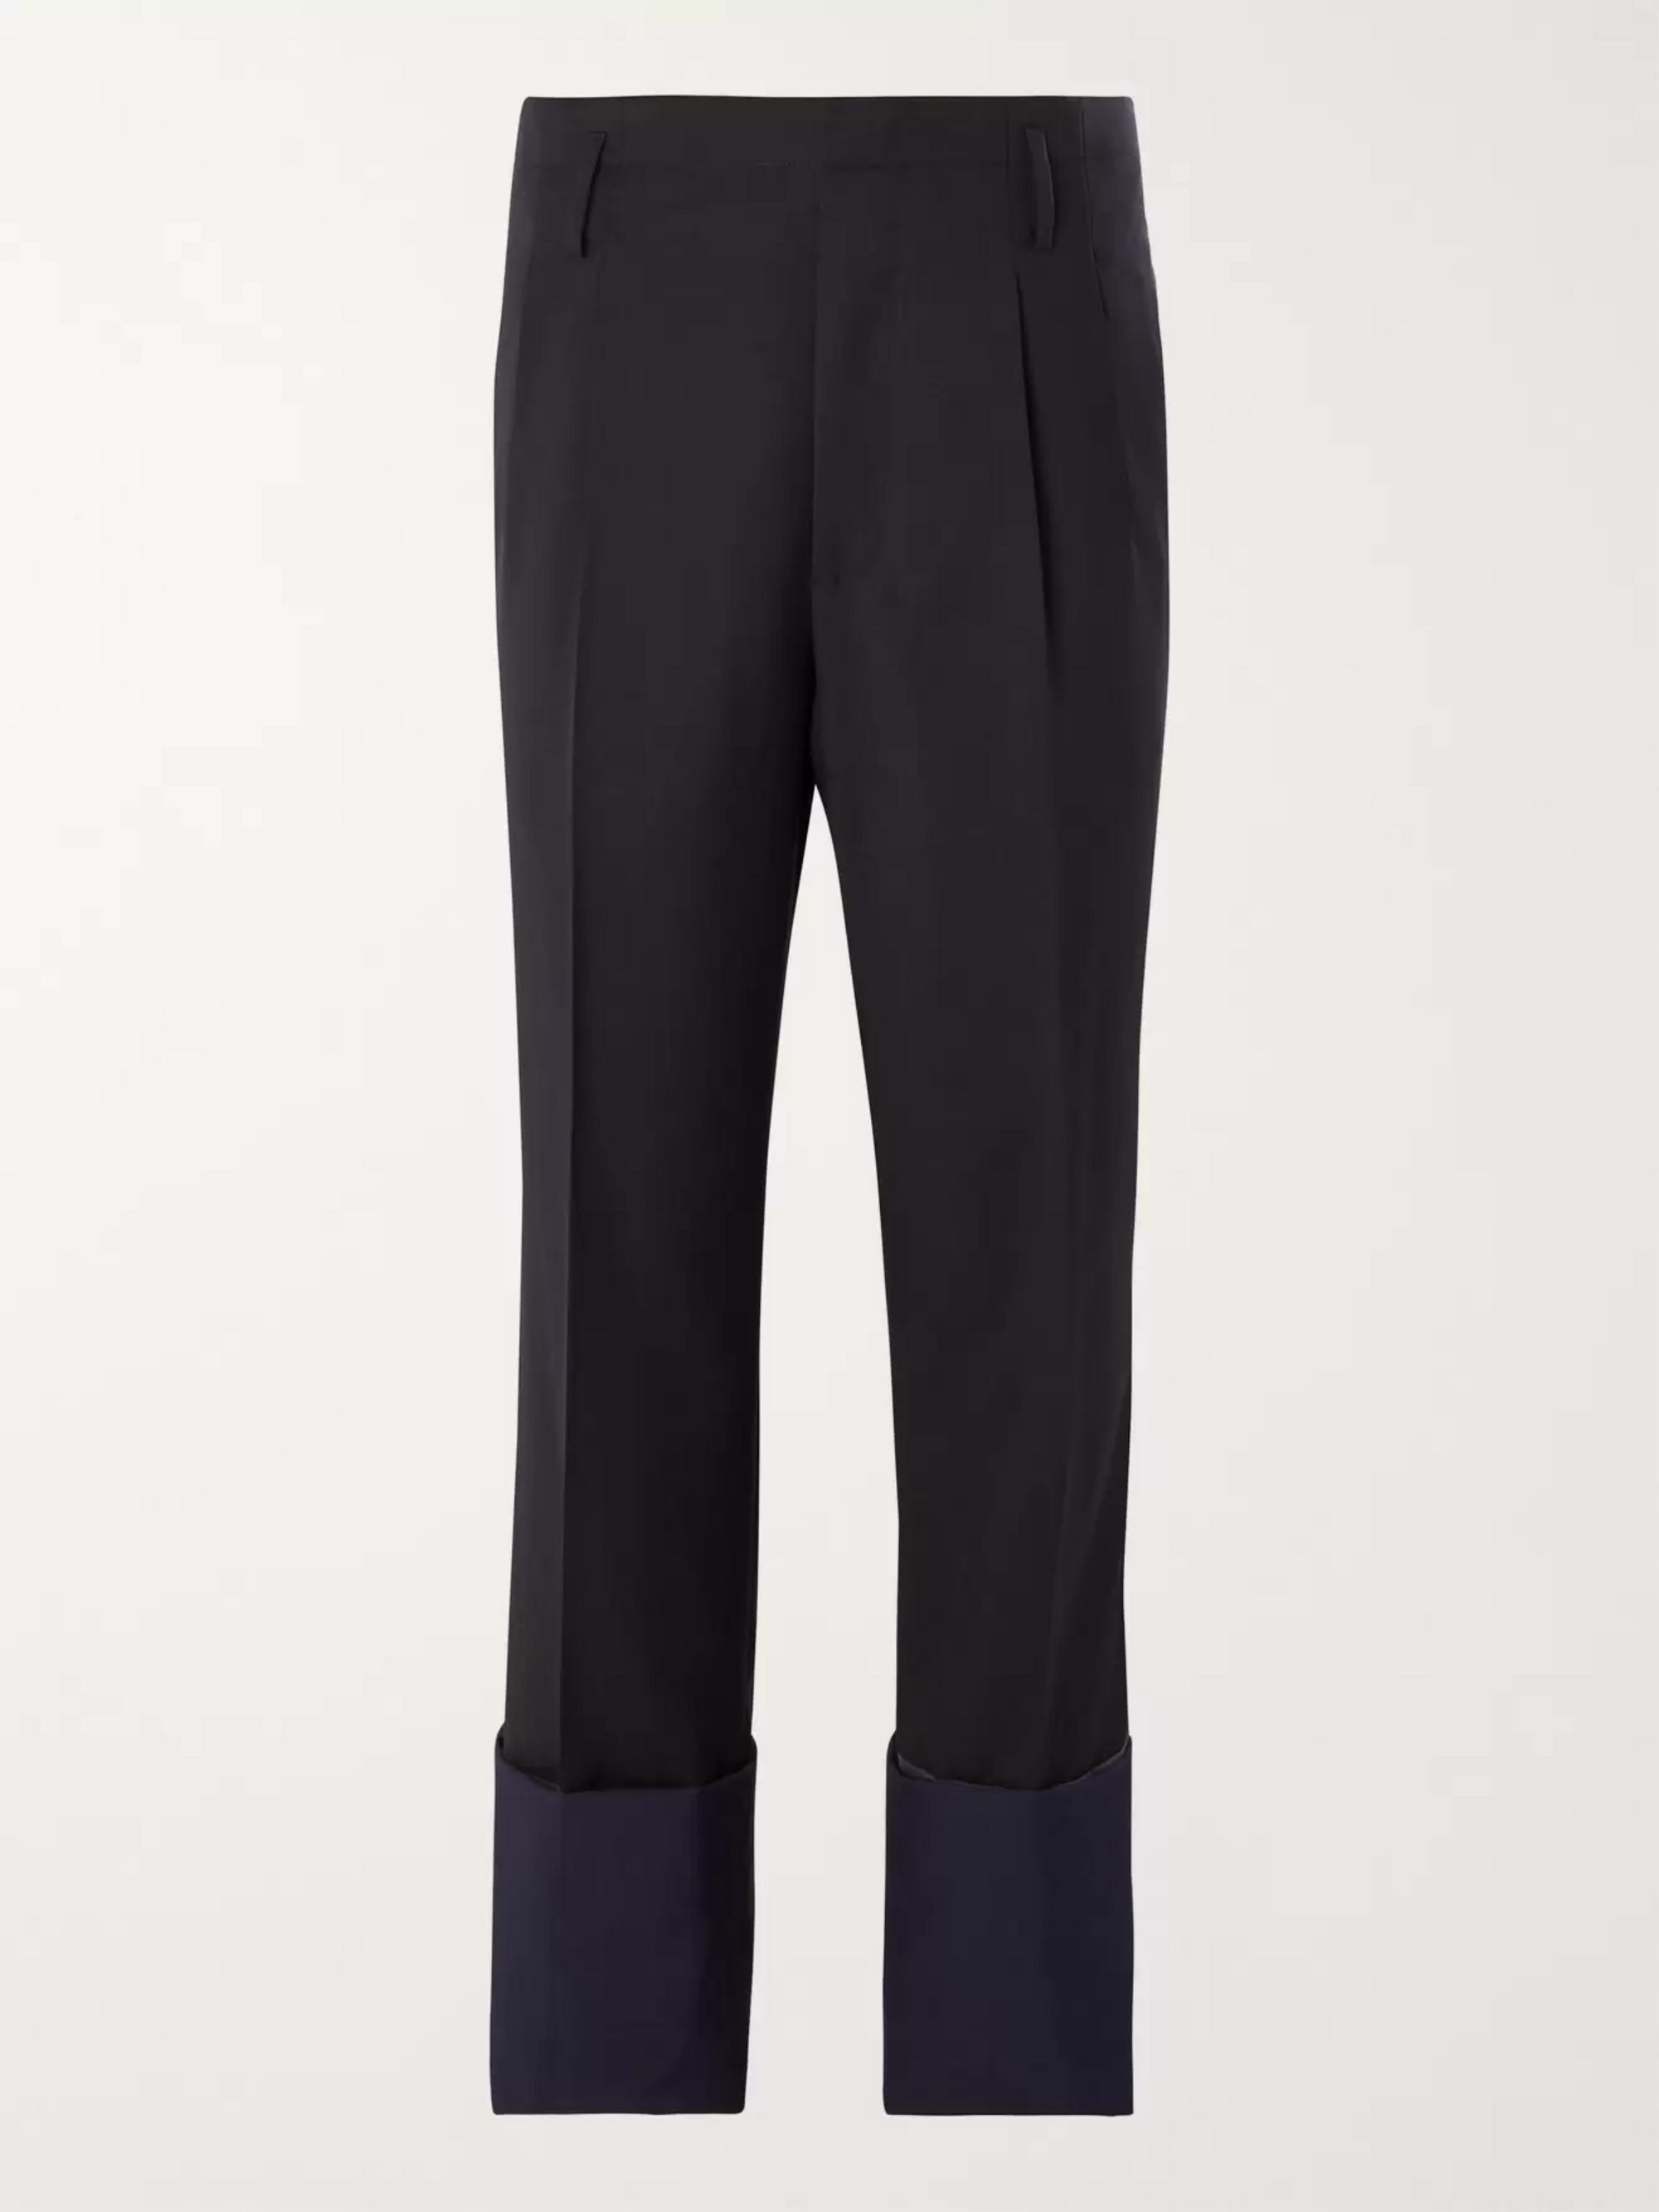 Lanvin Pleated Panelled Wool Trousers